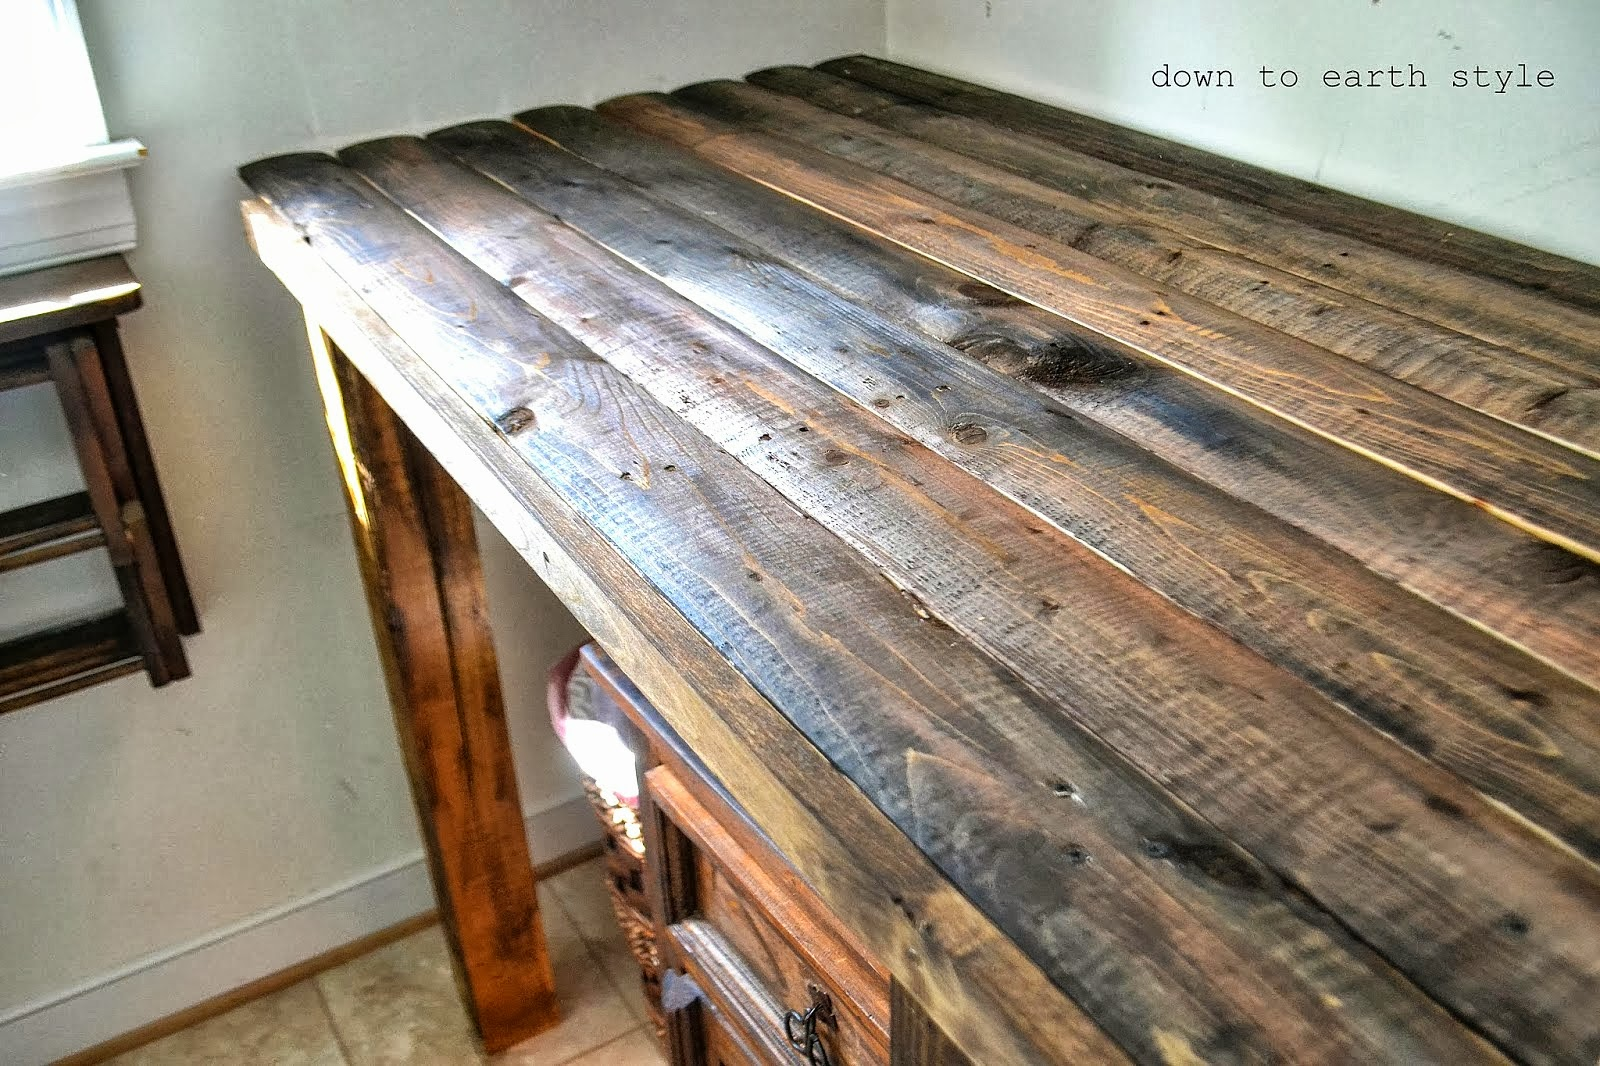 I Love That Junk: Reclaimed wood laundry room folding table - Down